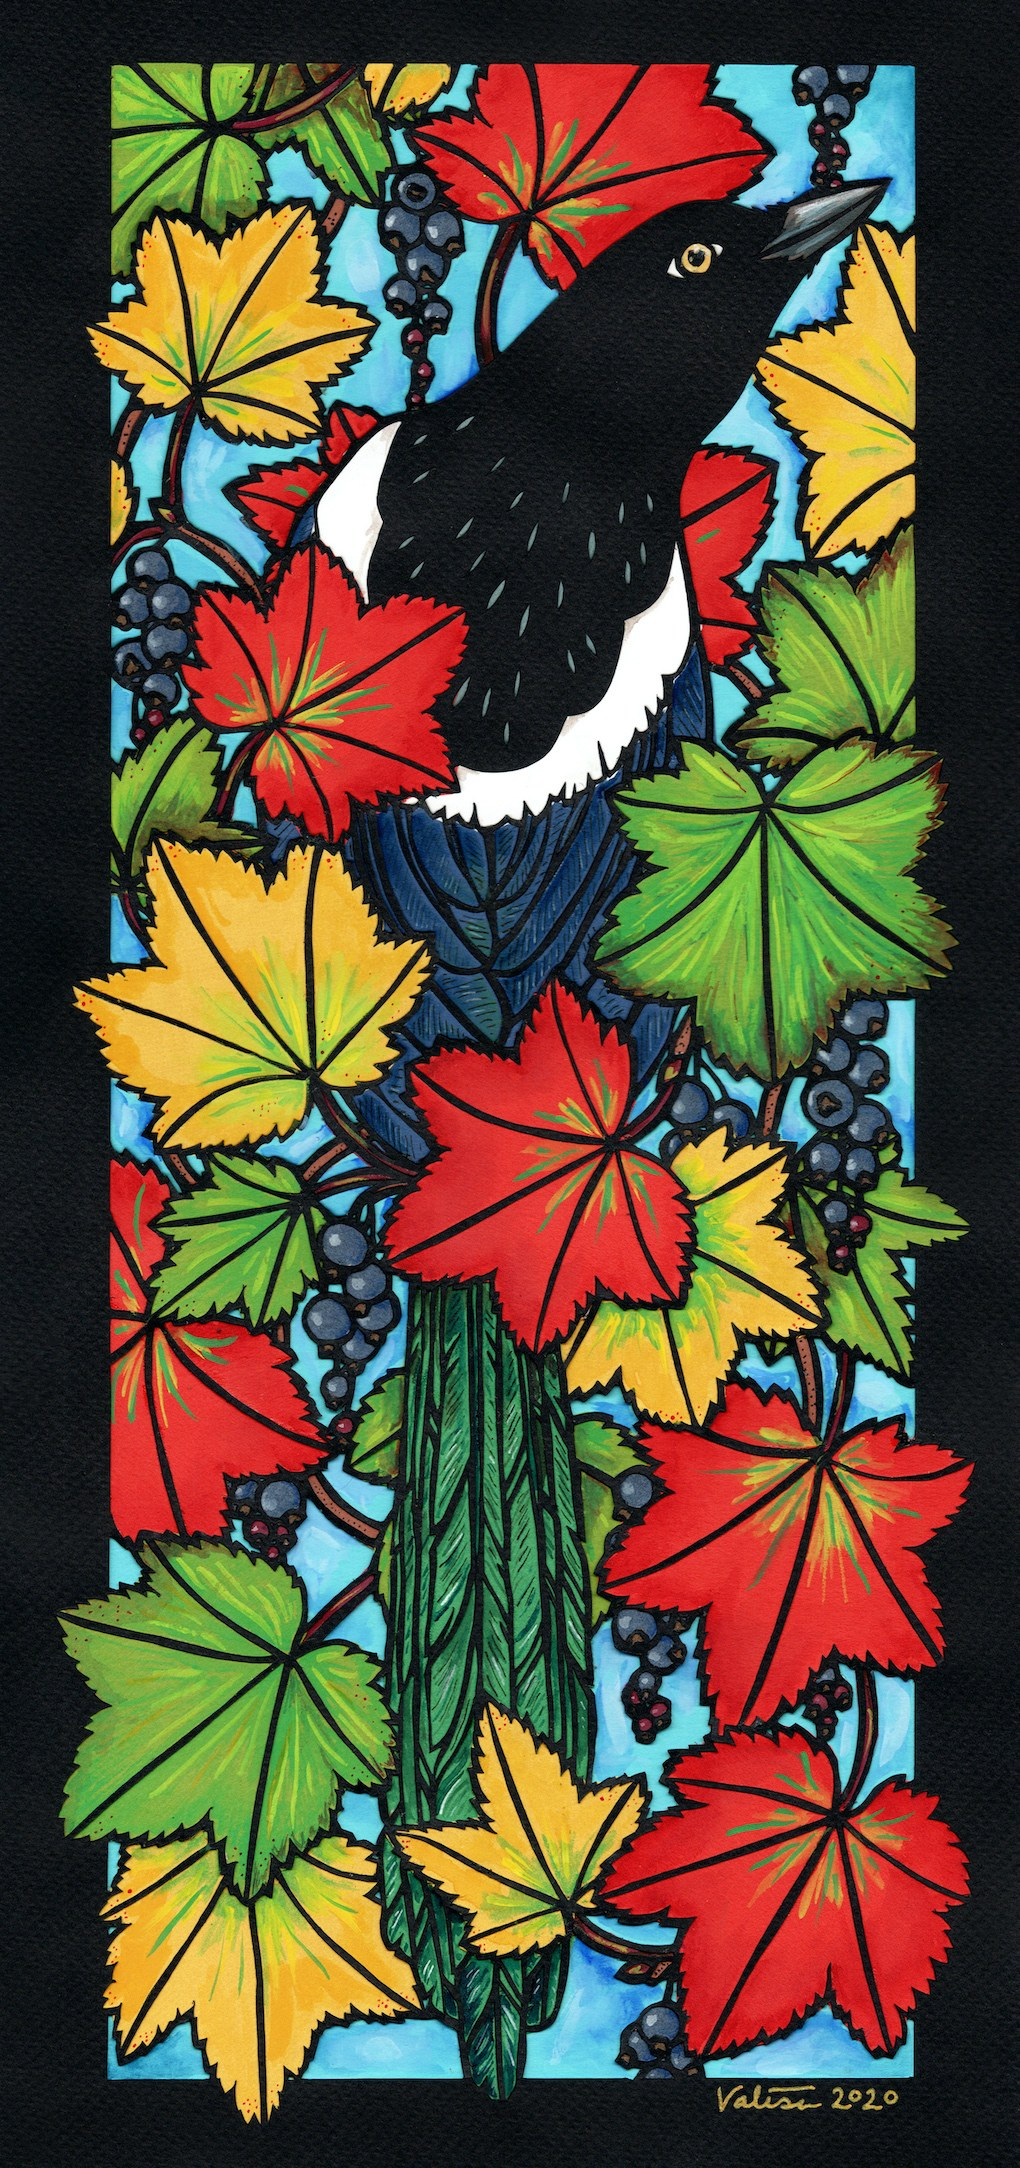 Artwork of magpie amid red, green, and yellow black currant leaves